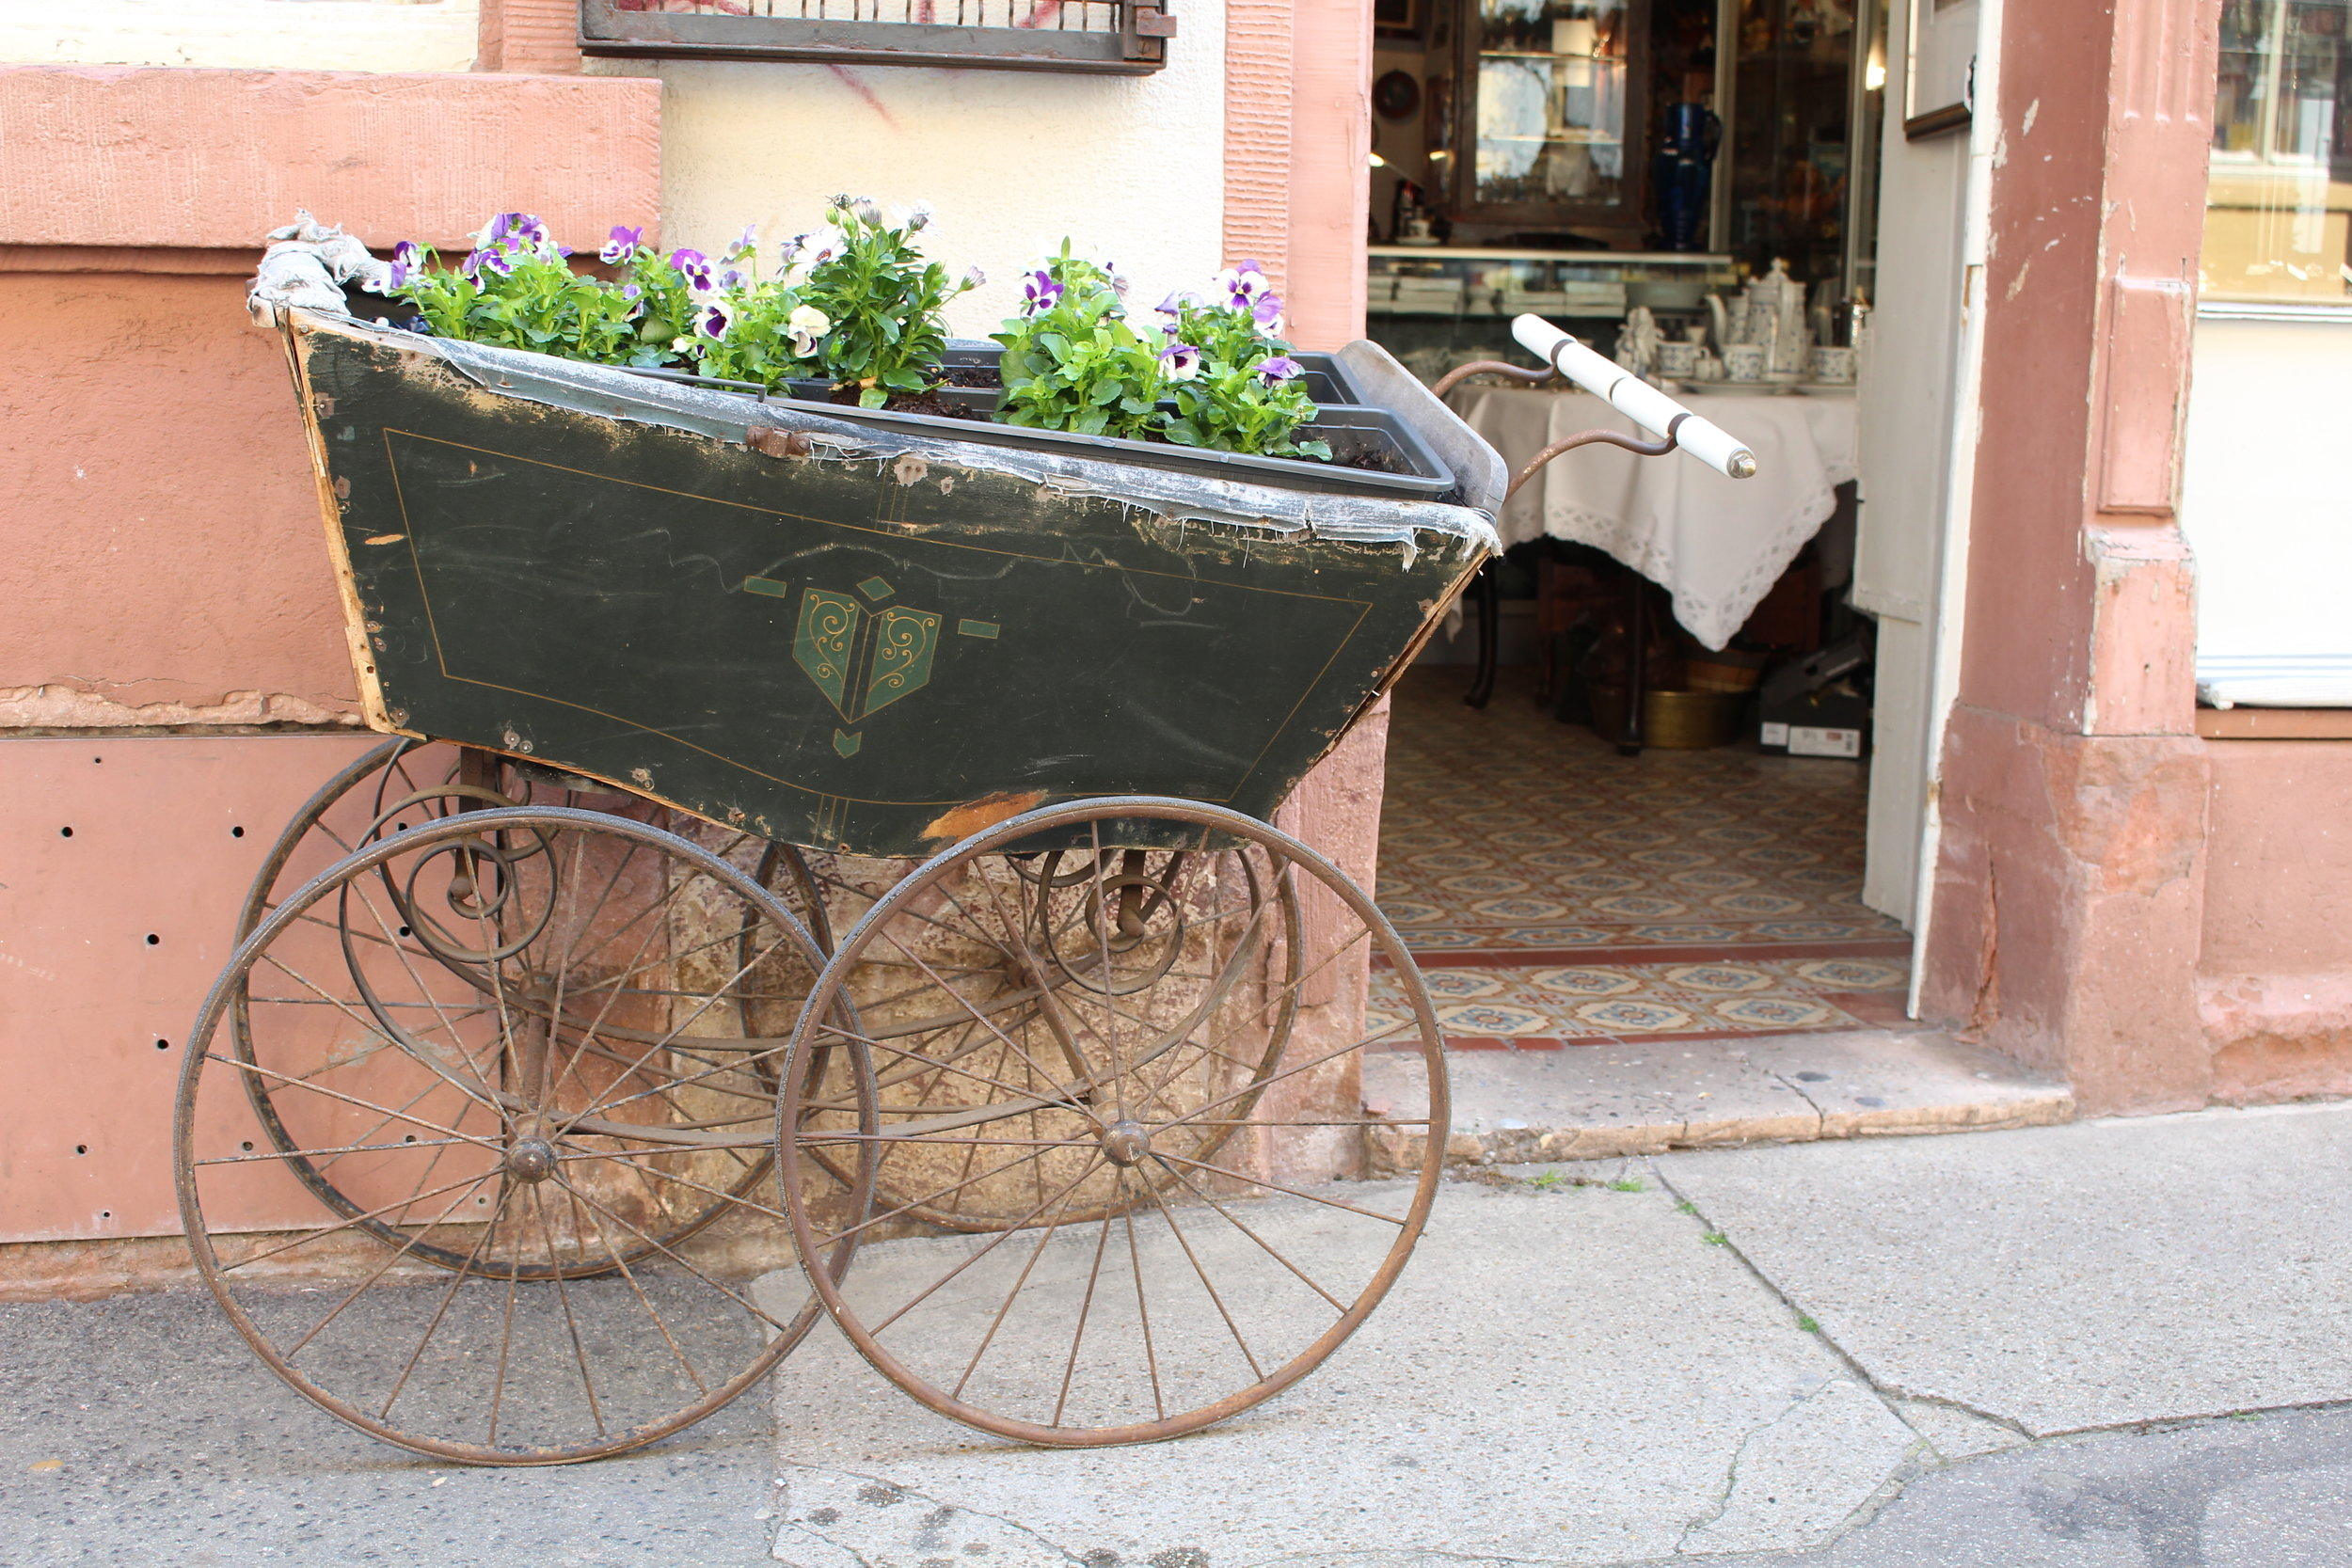 Buggy with flowers in Heidelberg, Germany